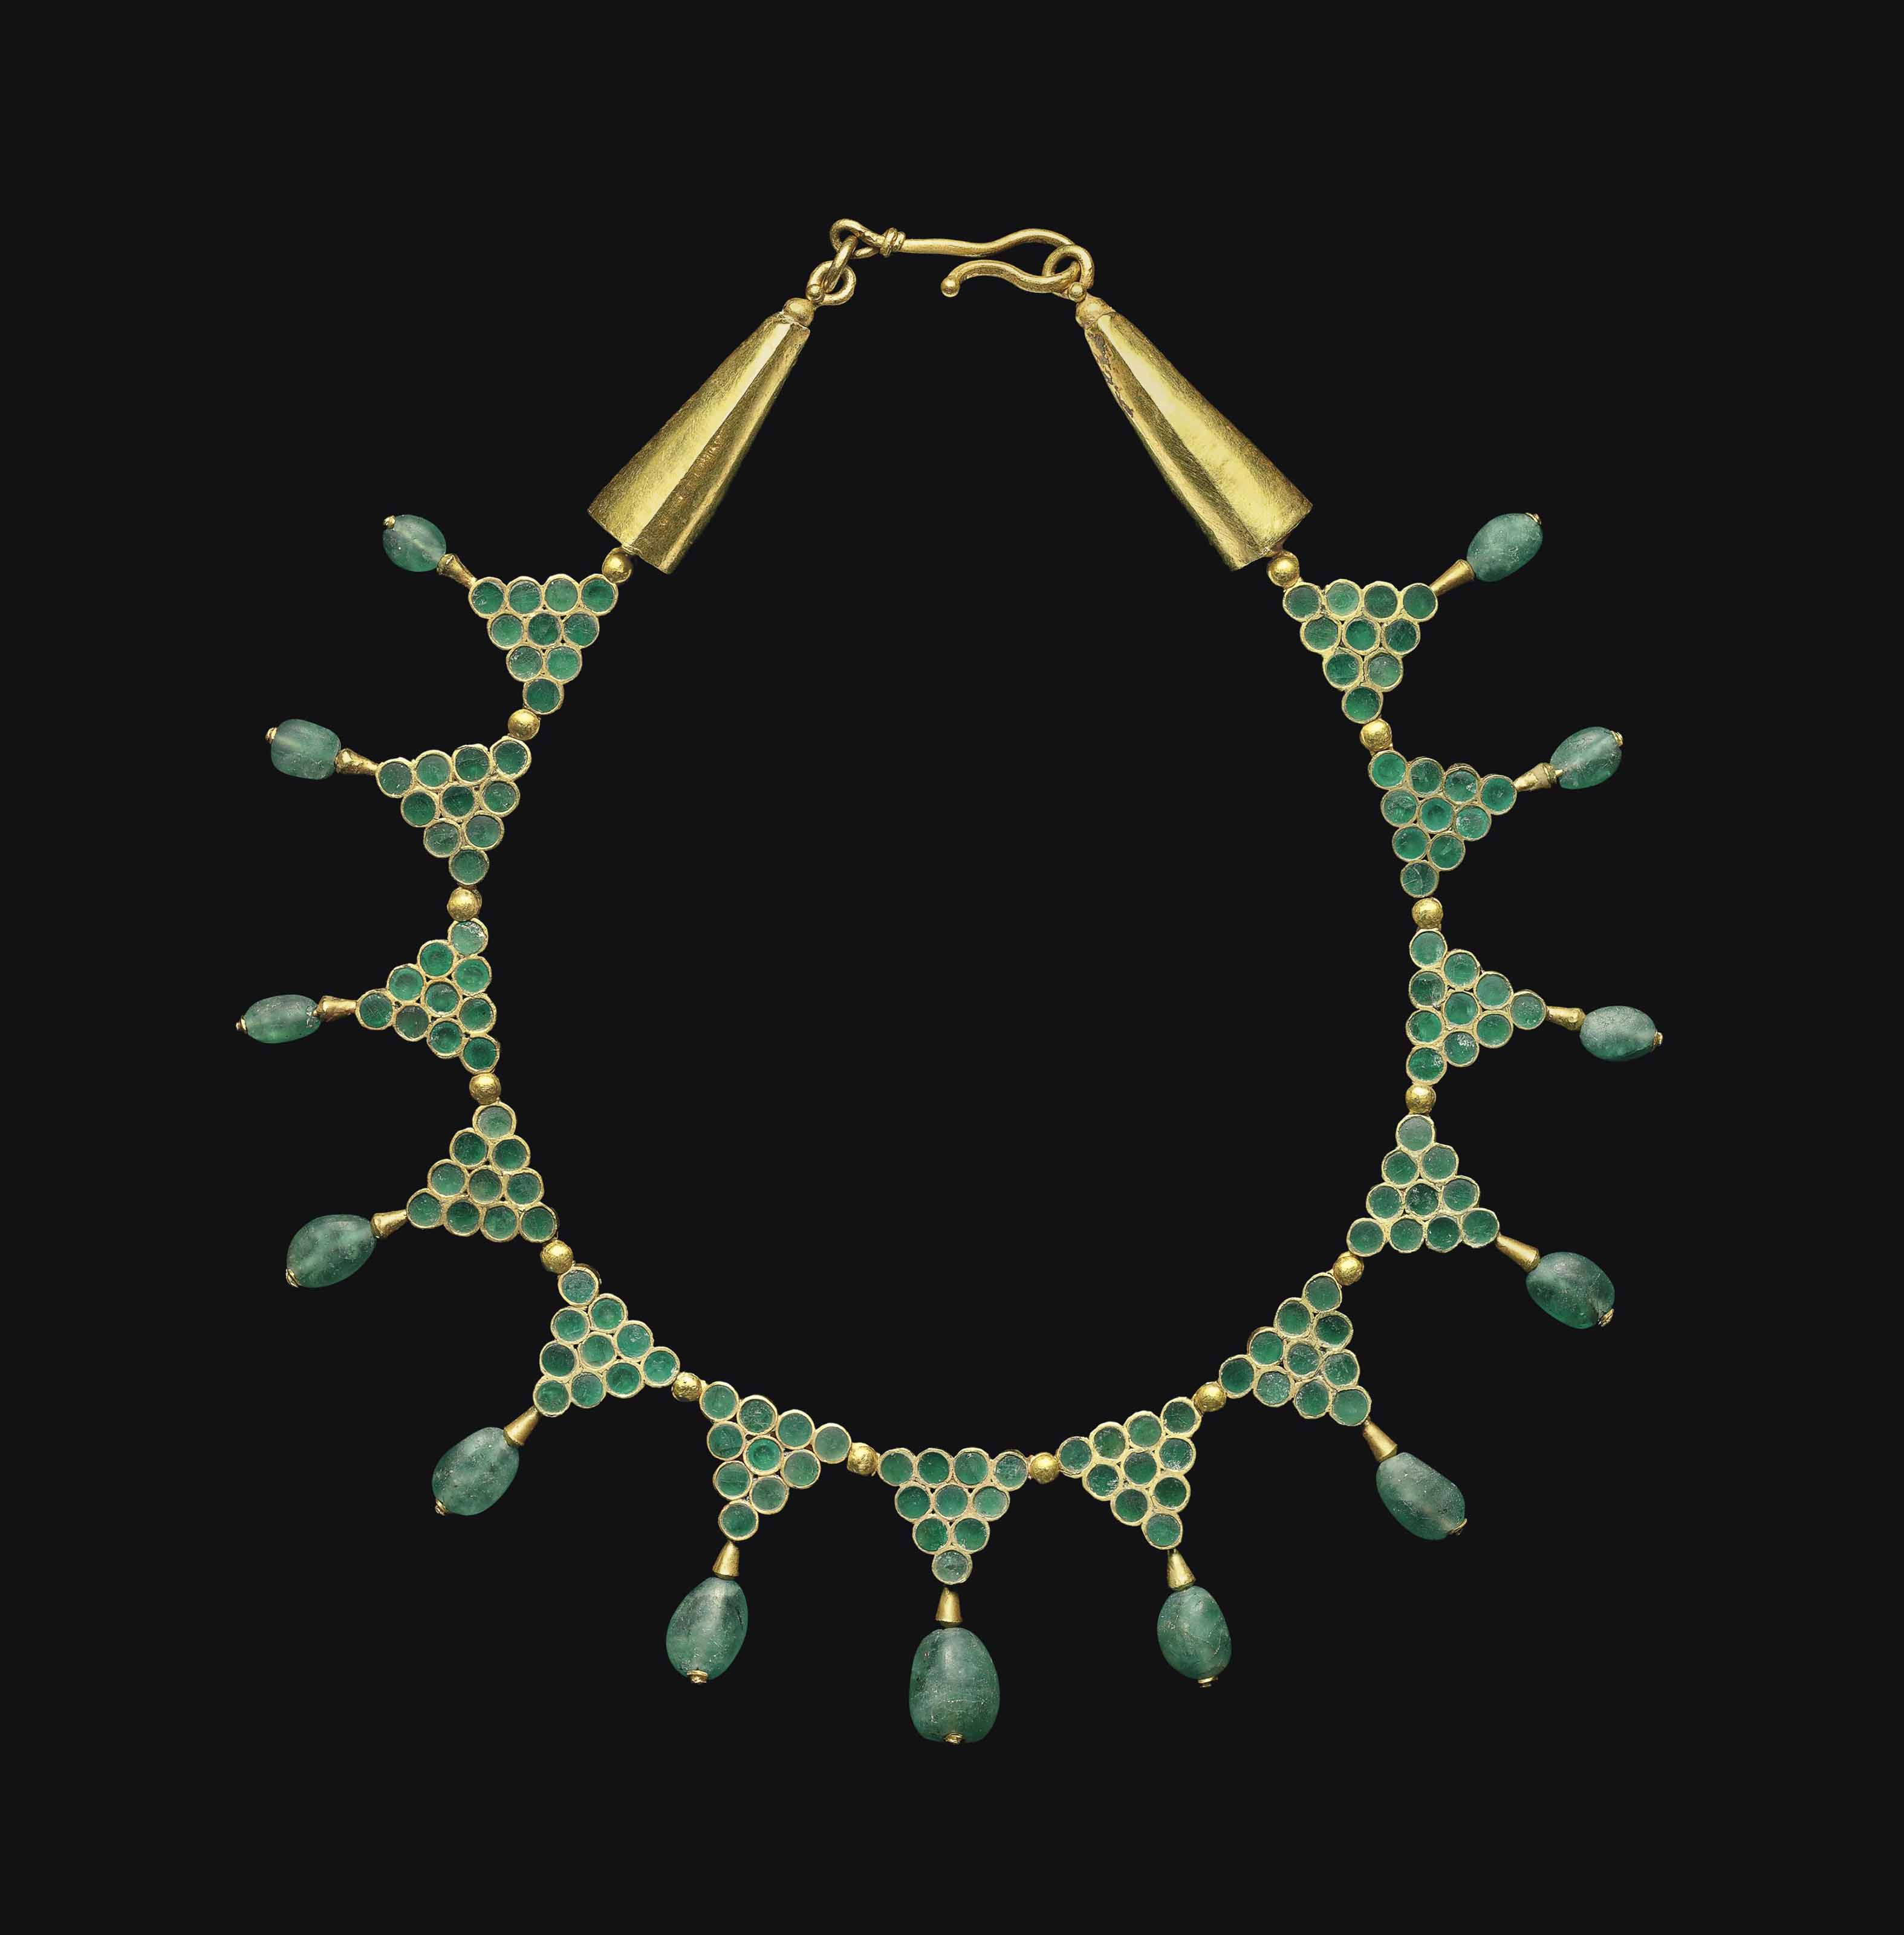 A BYZANTINE GOLD AND EMERALD N